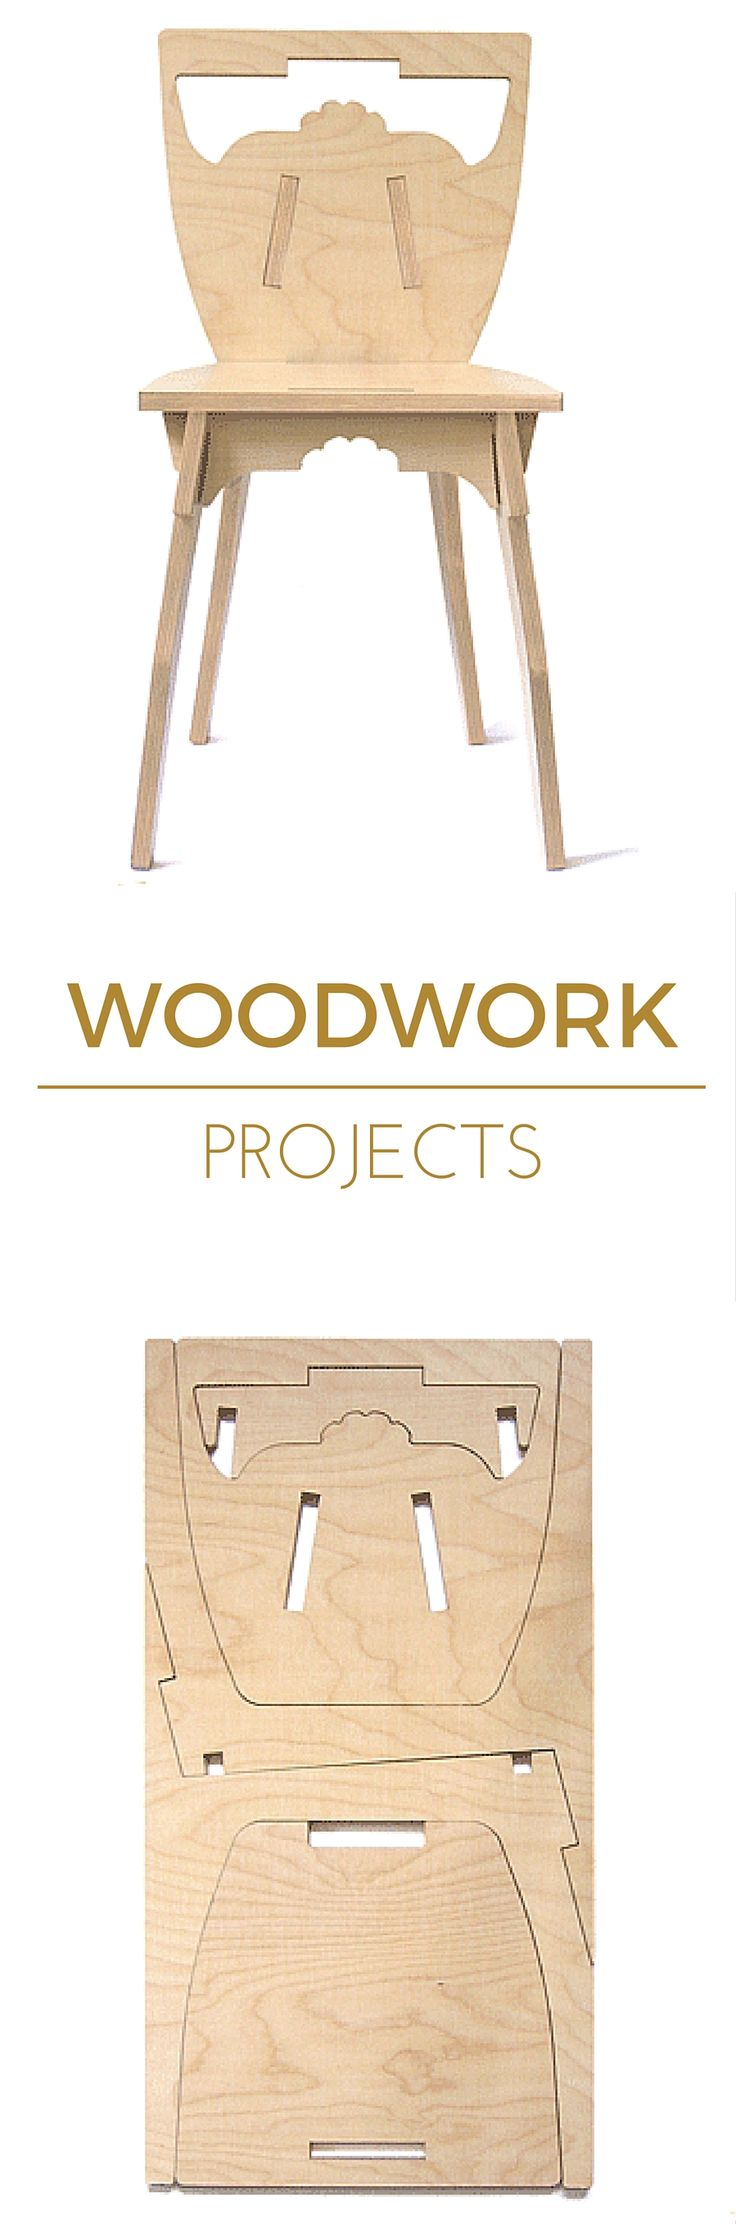 plywood-furniture-plans-flatpack-furniture.jpg